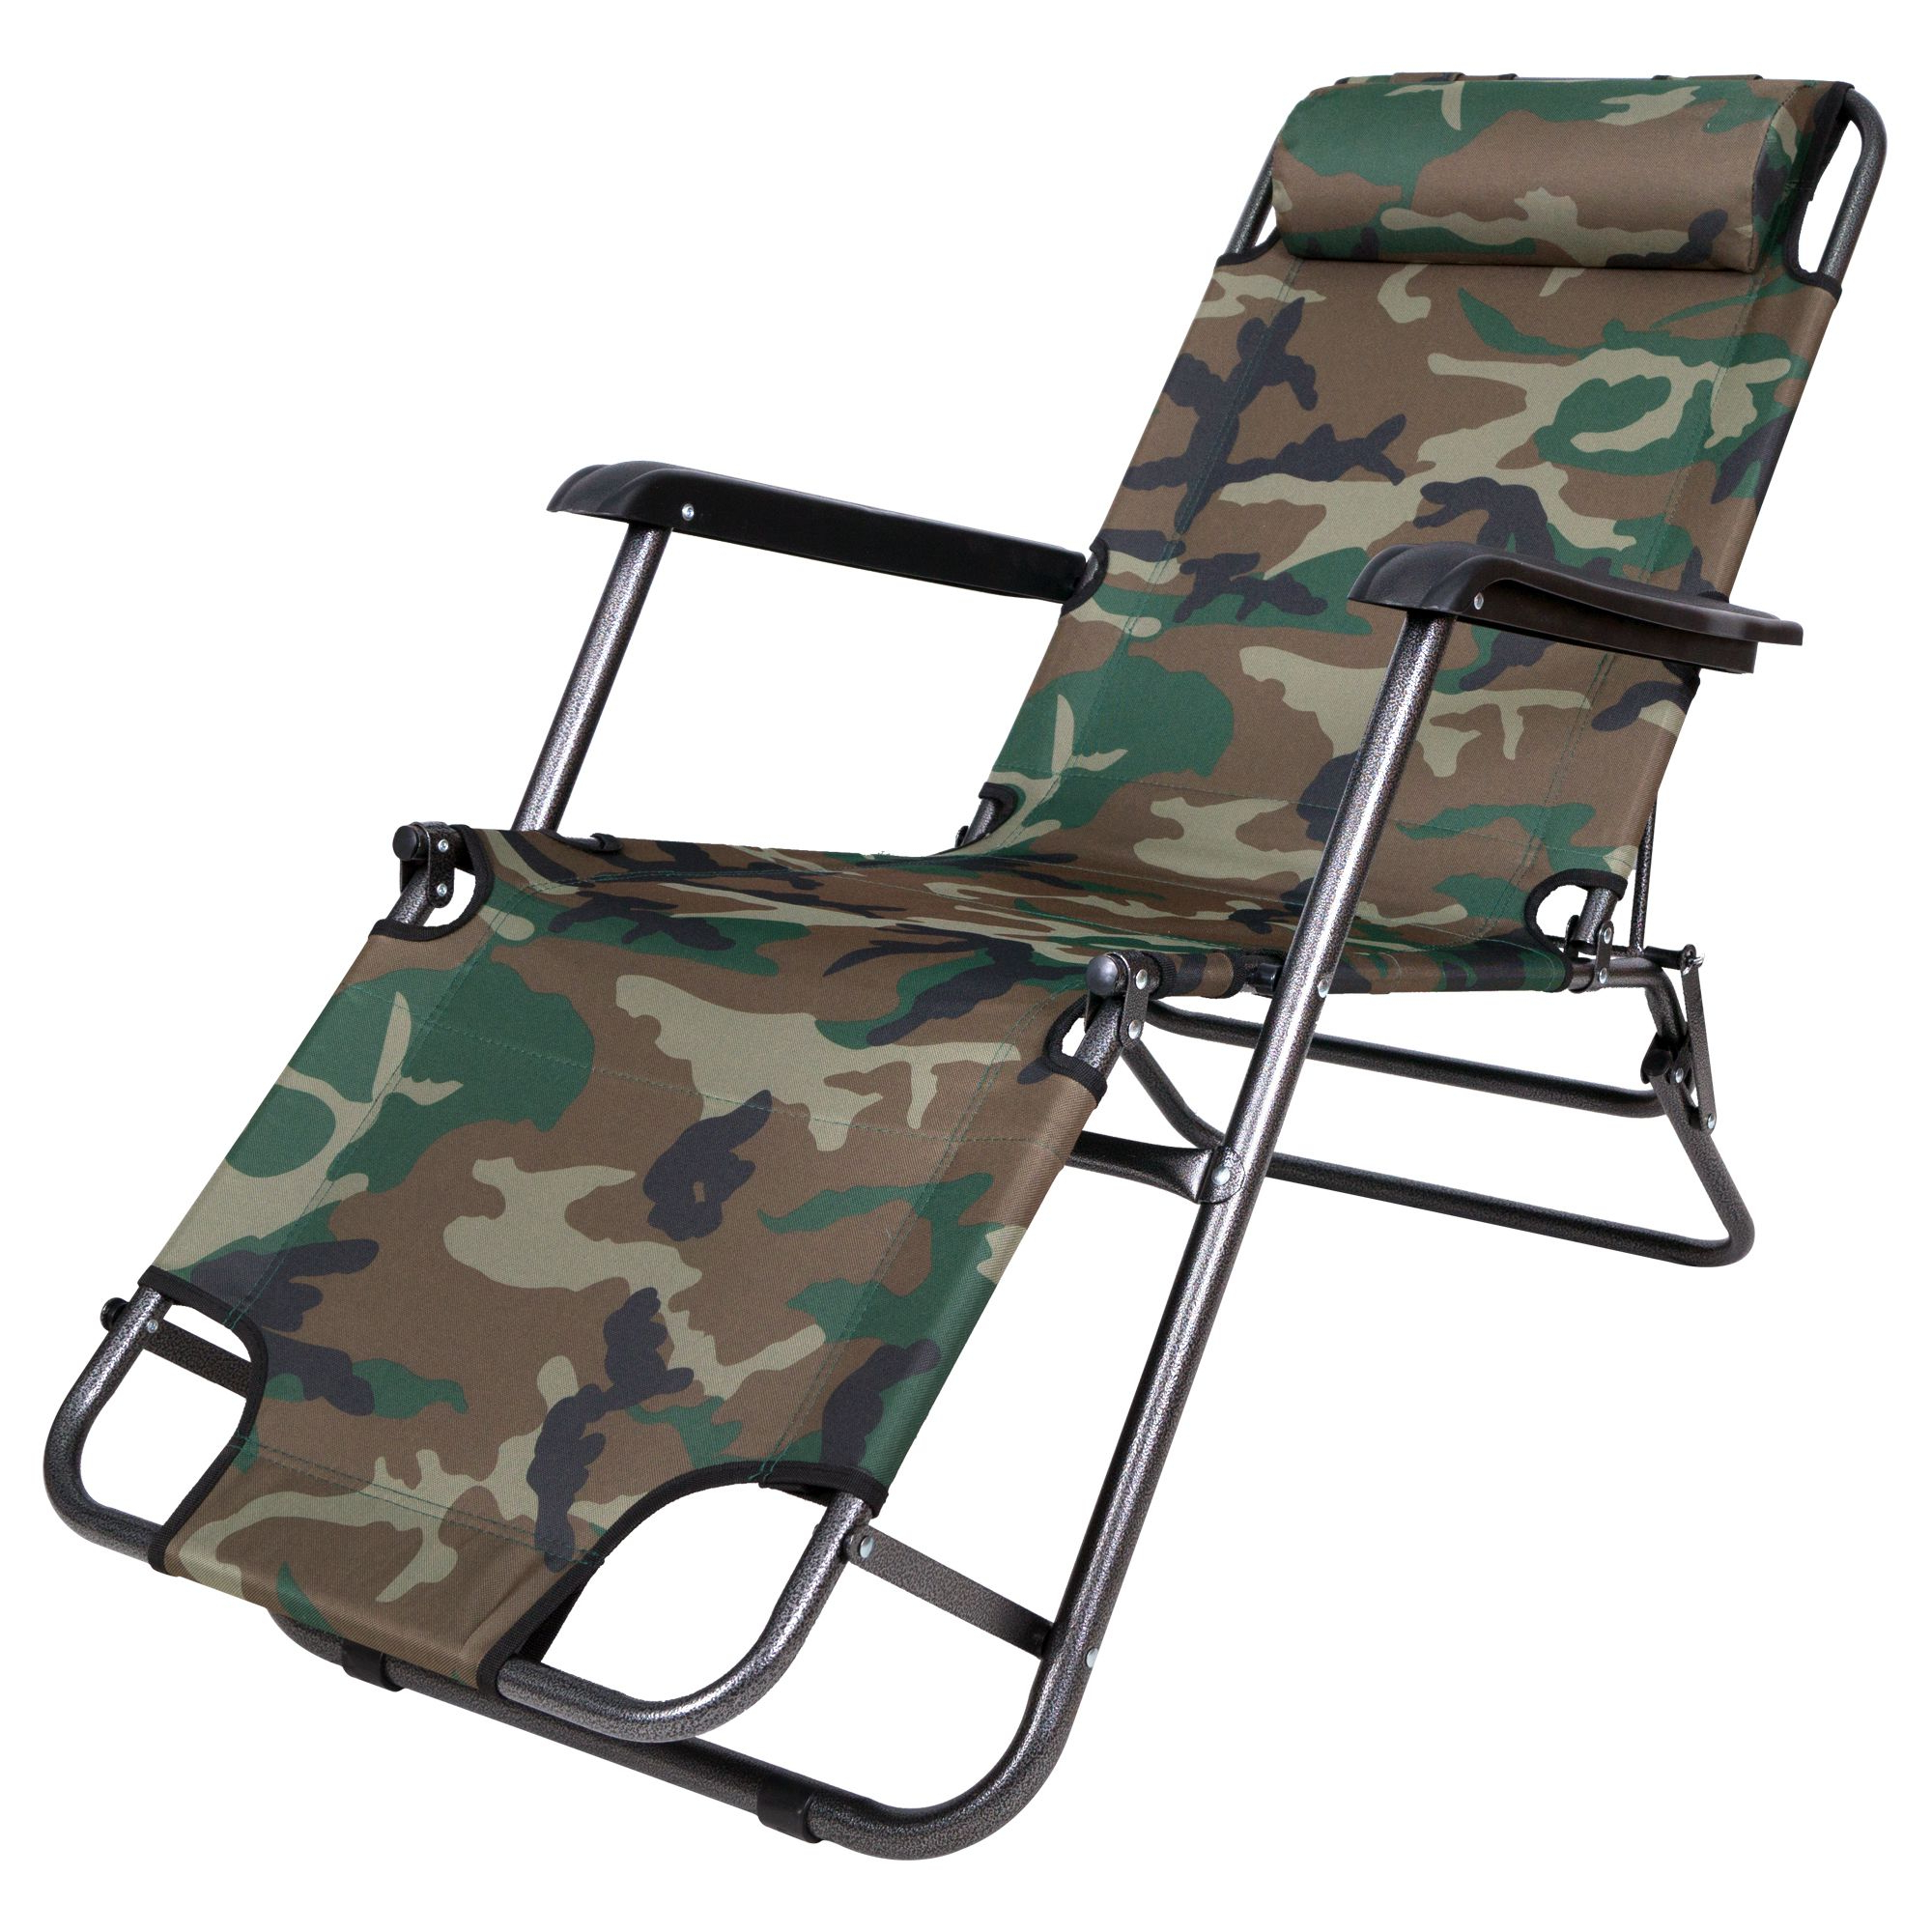 Portable Reclining Beach Chaise Lounge Folding Chairs For Most Current Story@home Folding Recliner Beach Lounge Garden Outdoor Portable Chair, Camo (View 22 of 25)